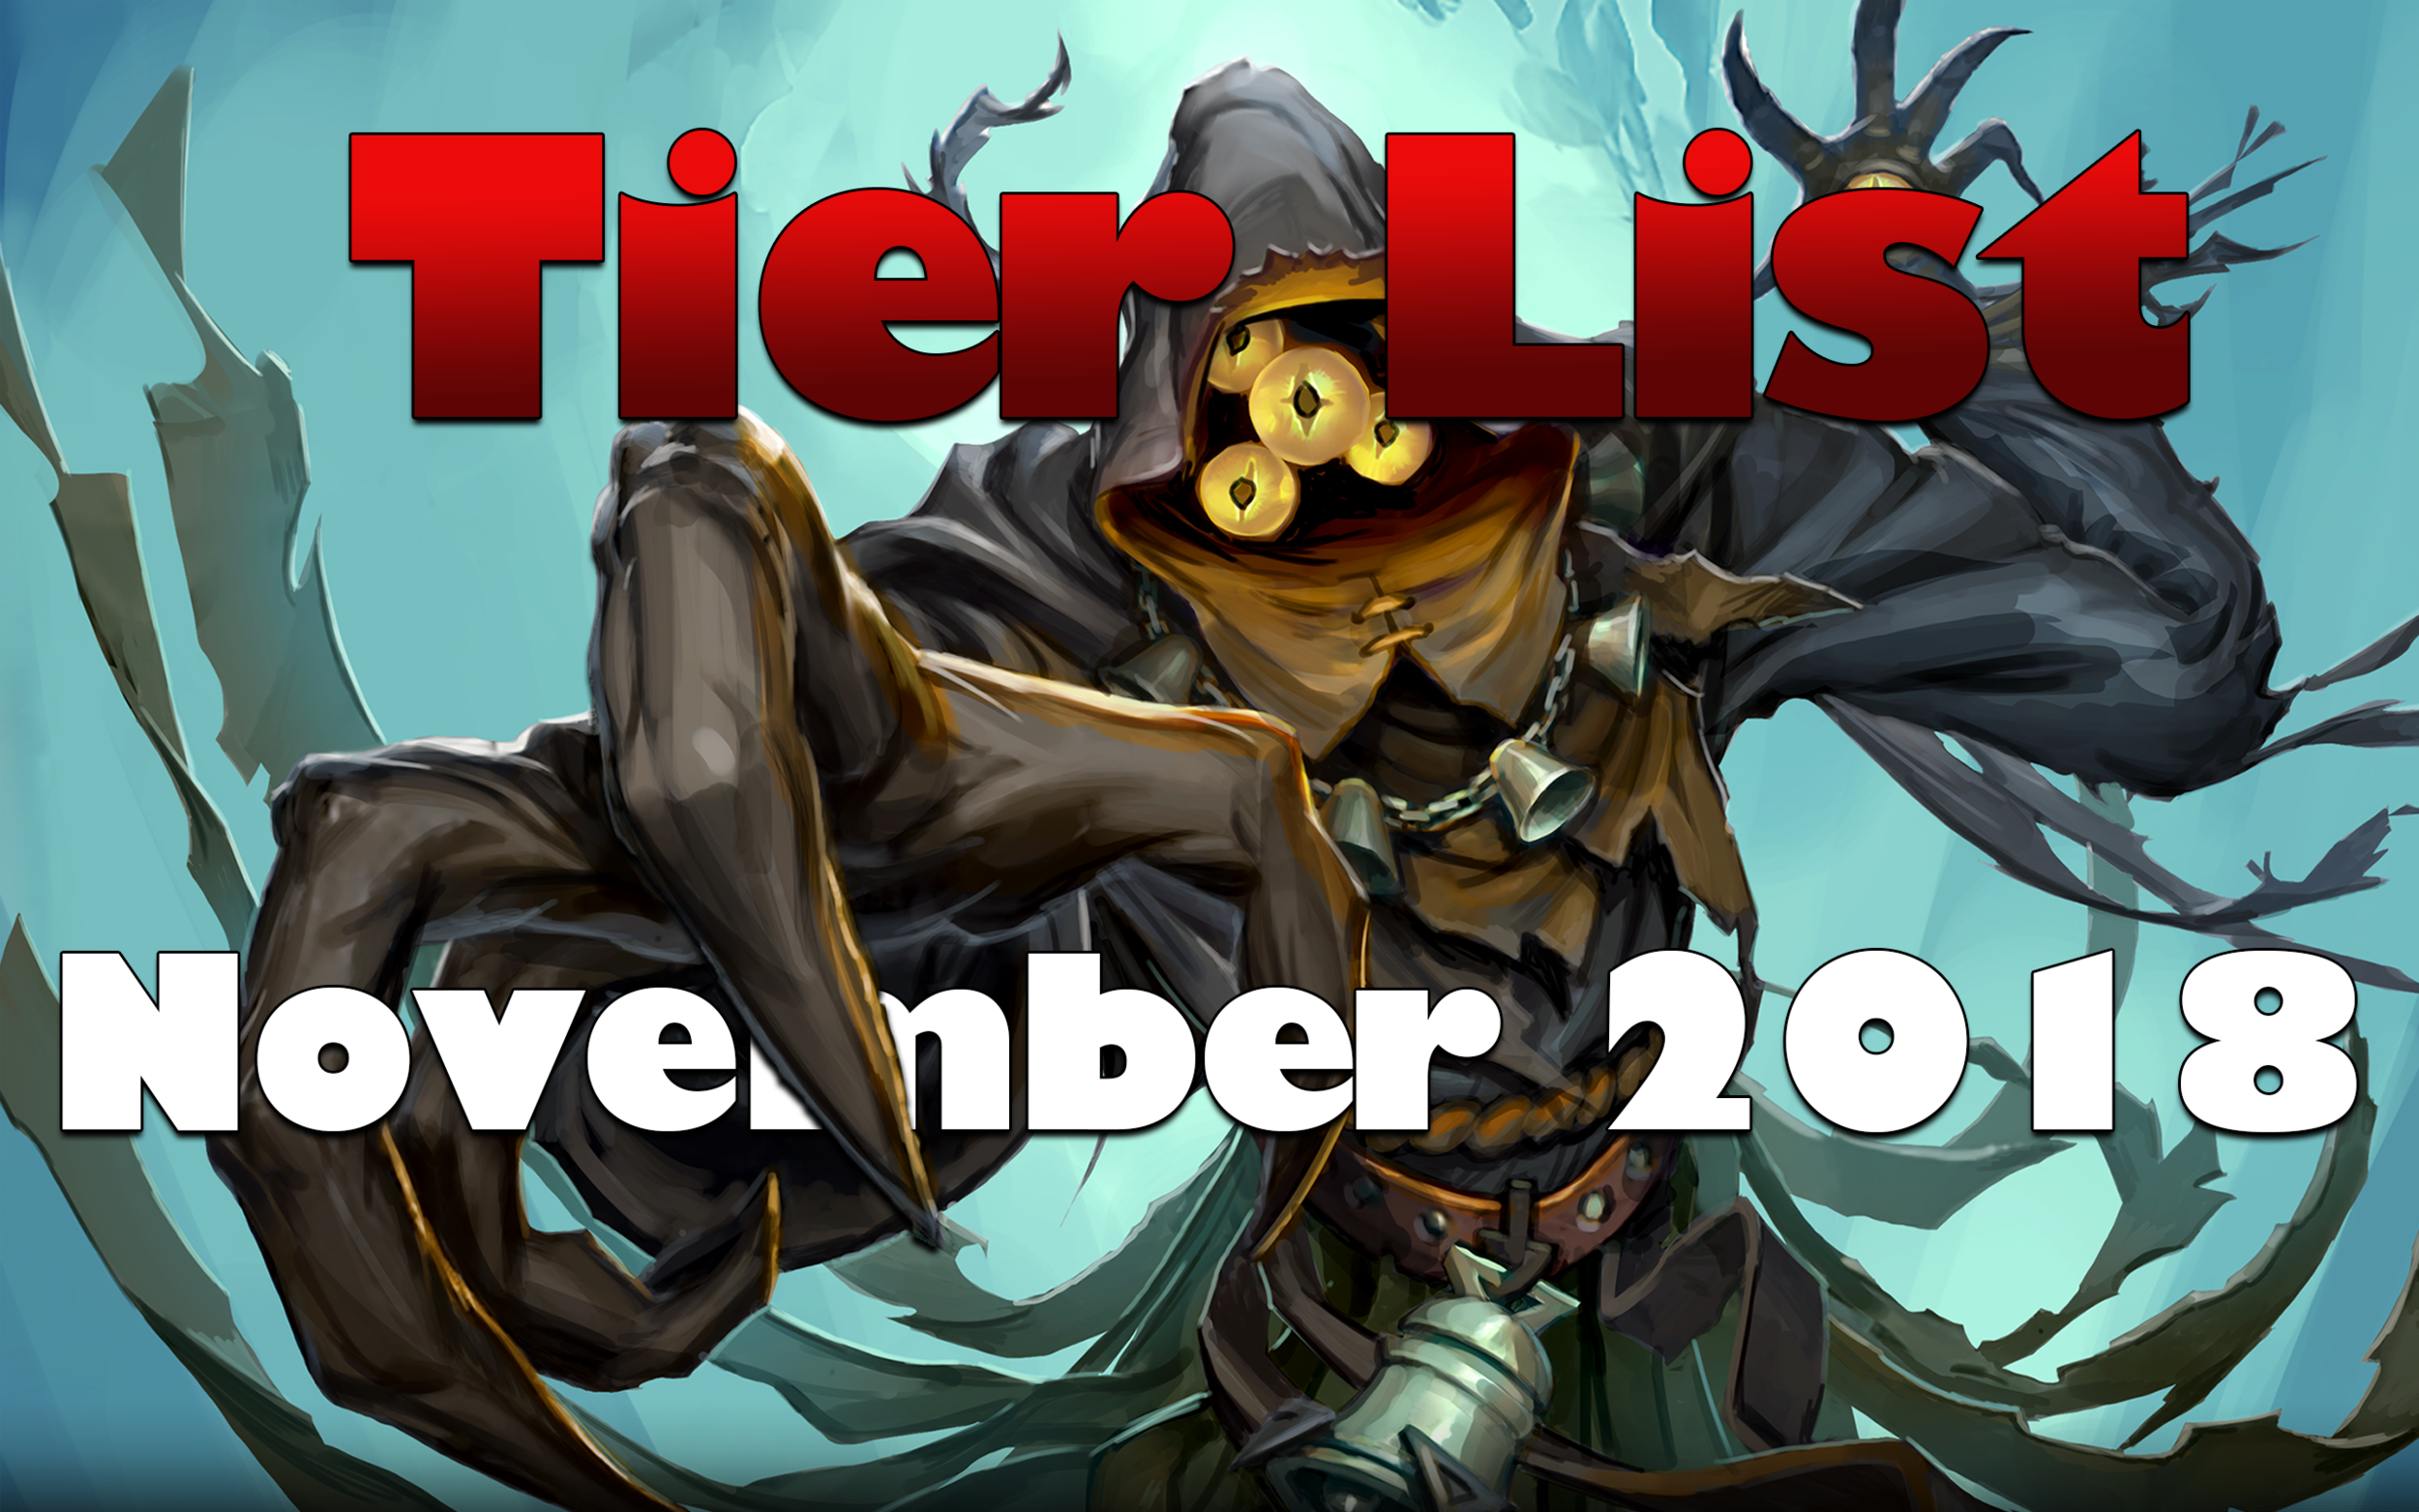 November 2018 Tier List - What's popular? What's powerful? What's getting nerfed?Article/Video - Neon - November 1, 2018